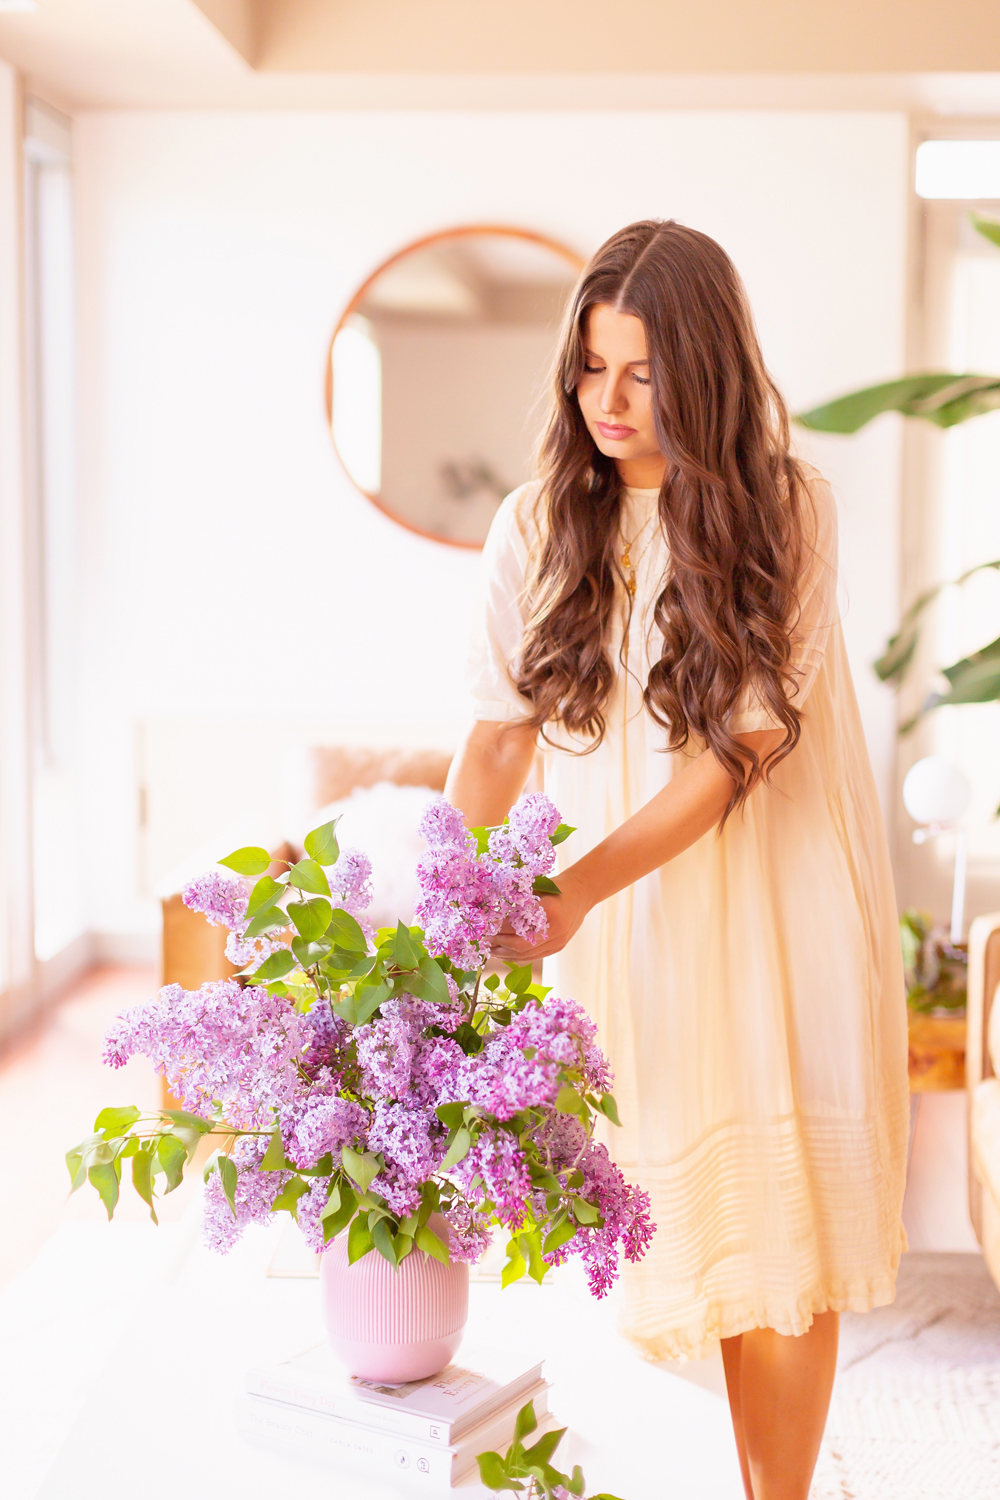 How to Create a Lilac Bouquet | Smiling brunette woman in a flowy linen dress creating an oversized lilac arrangement in her neutral mid century meets boho modern living room | DIY Lilac Flower Arrangement | How to Forage Lilacs | How to Prolong Lilac Vase Life | How to Arrange Lilacs | Fresh Lilac Flower Bouquet | Extremely Pretty Lilac Arrangement | Purple Lilac Arrangement | How to Cut Lilacs from a tree or bush | Calgary Creative Lifestyle Blogger // JustineCelina.com